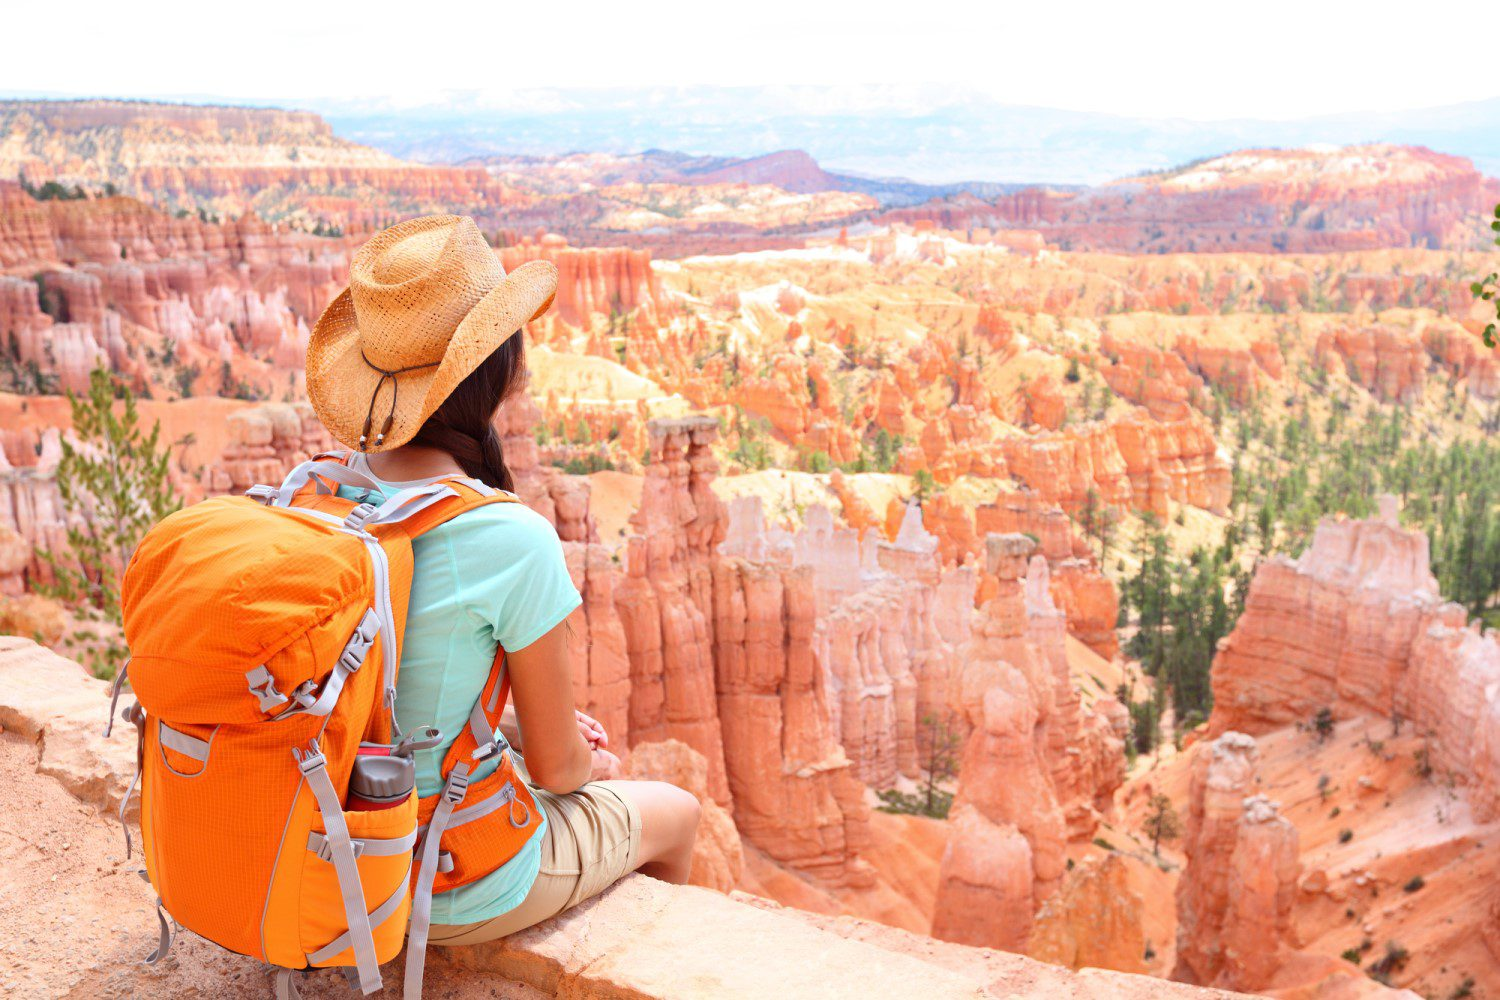 Female hiker taking a rest at the canyons with her orange backpack